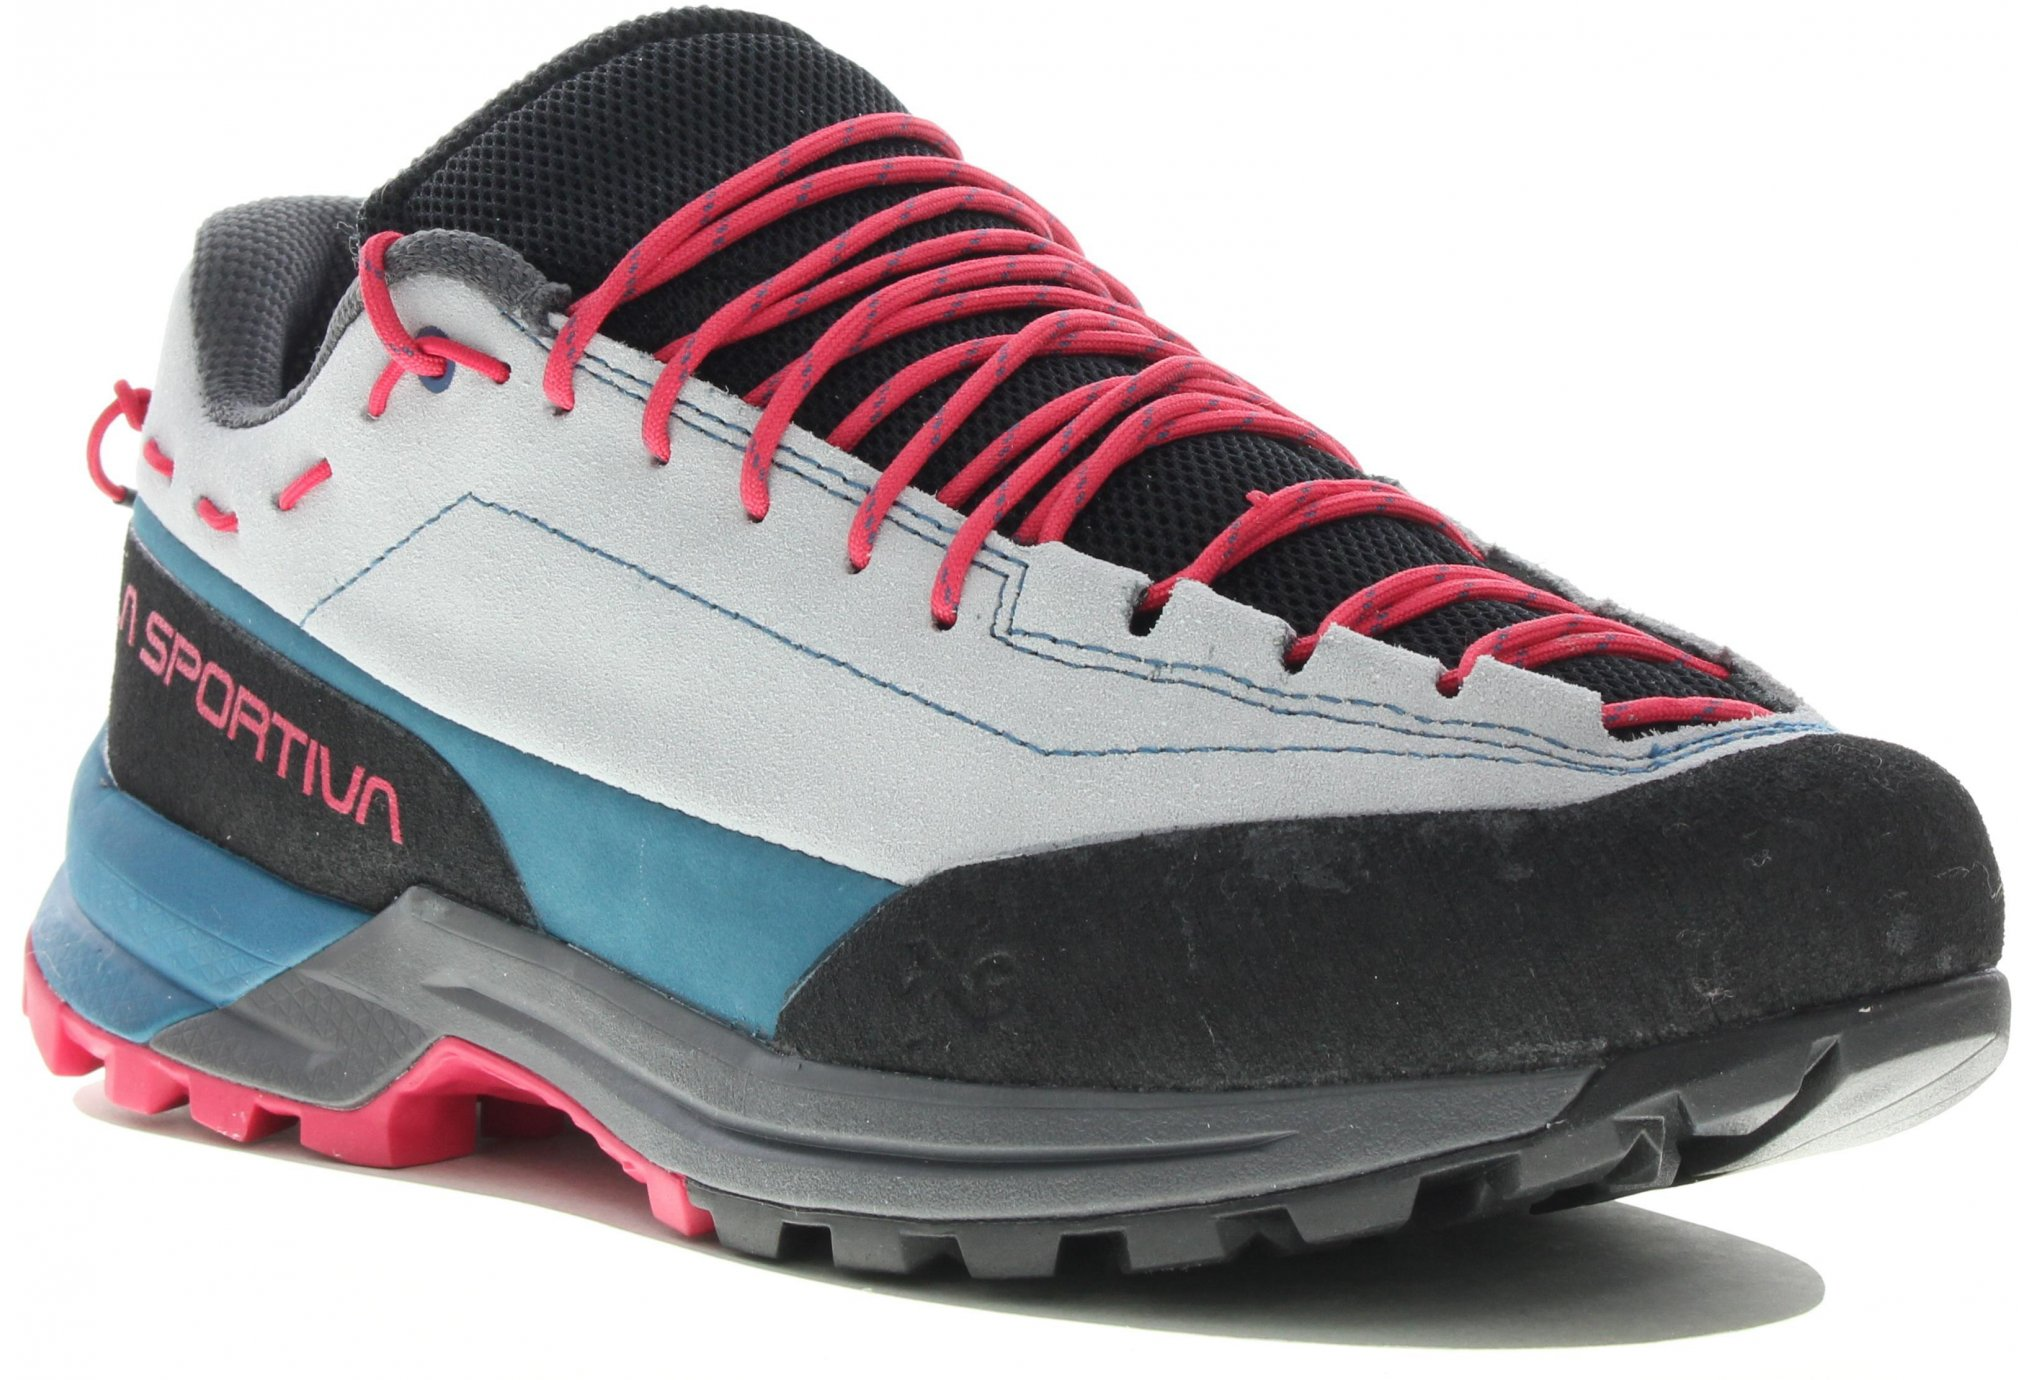 La Sportiva TX Guide Leather W Chaussures running femme